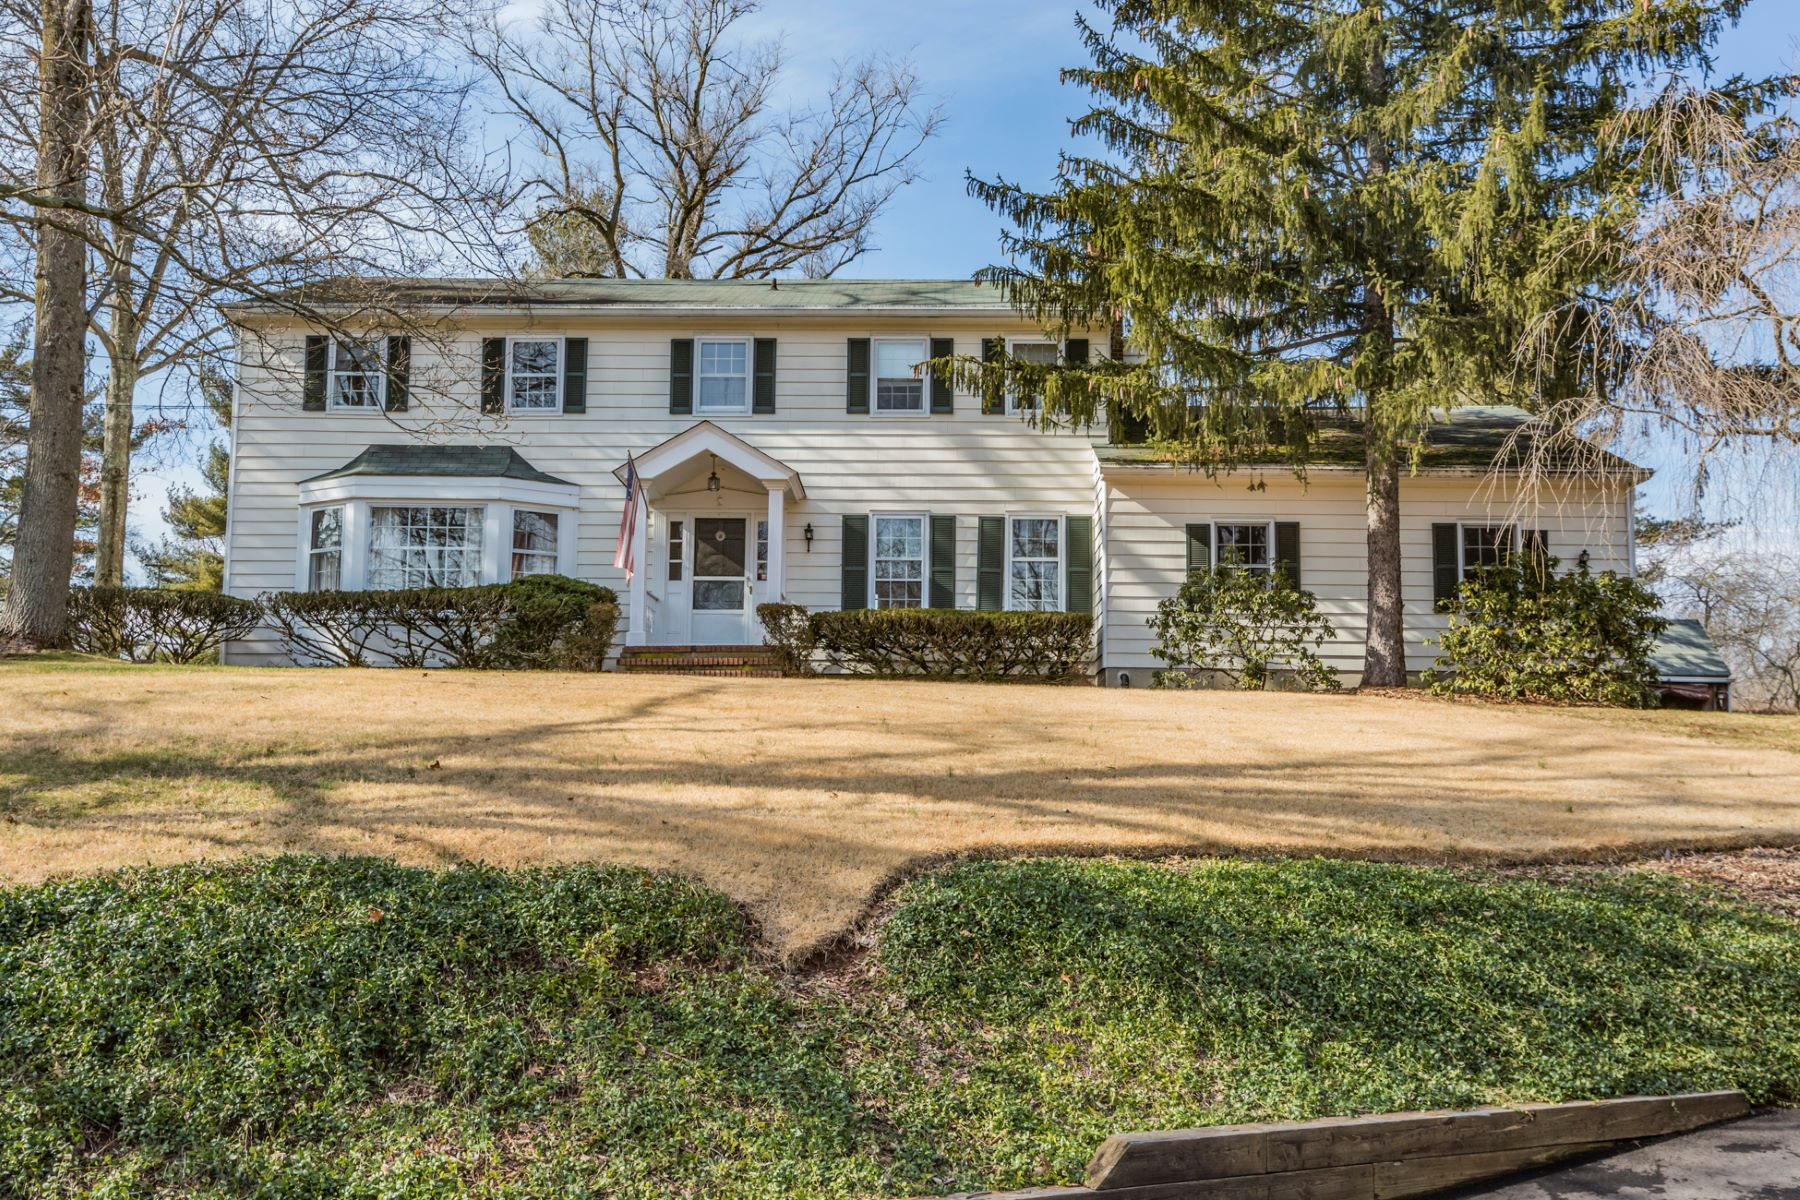 Single Family Home for Rent at Beautiful River Road Home - Montgomery Township 566 River Road Skillman, New Jersey 08502 United States